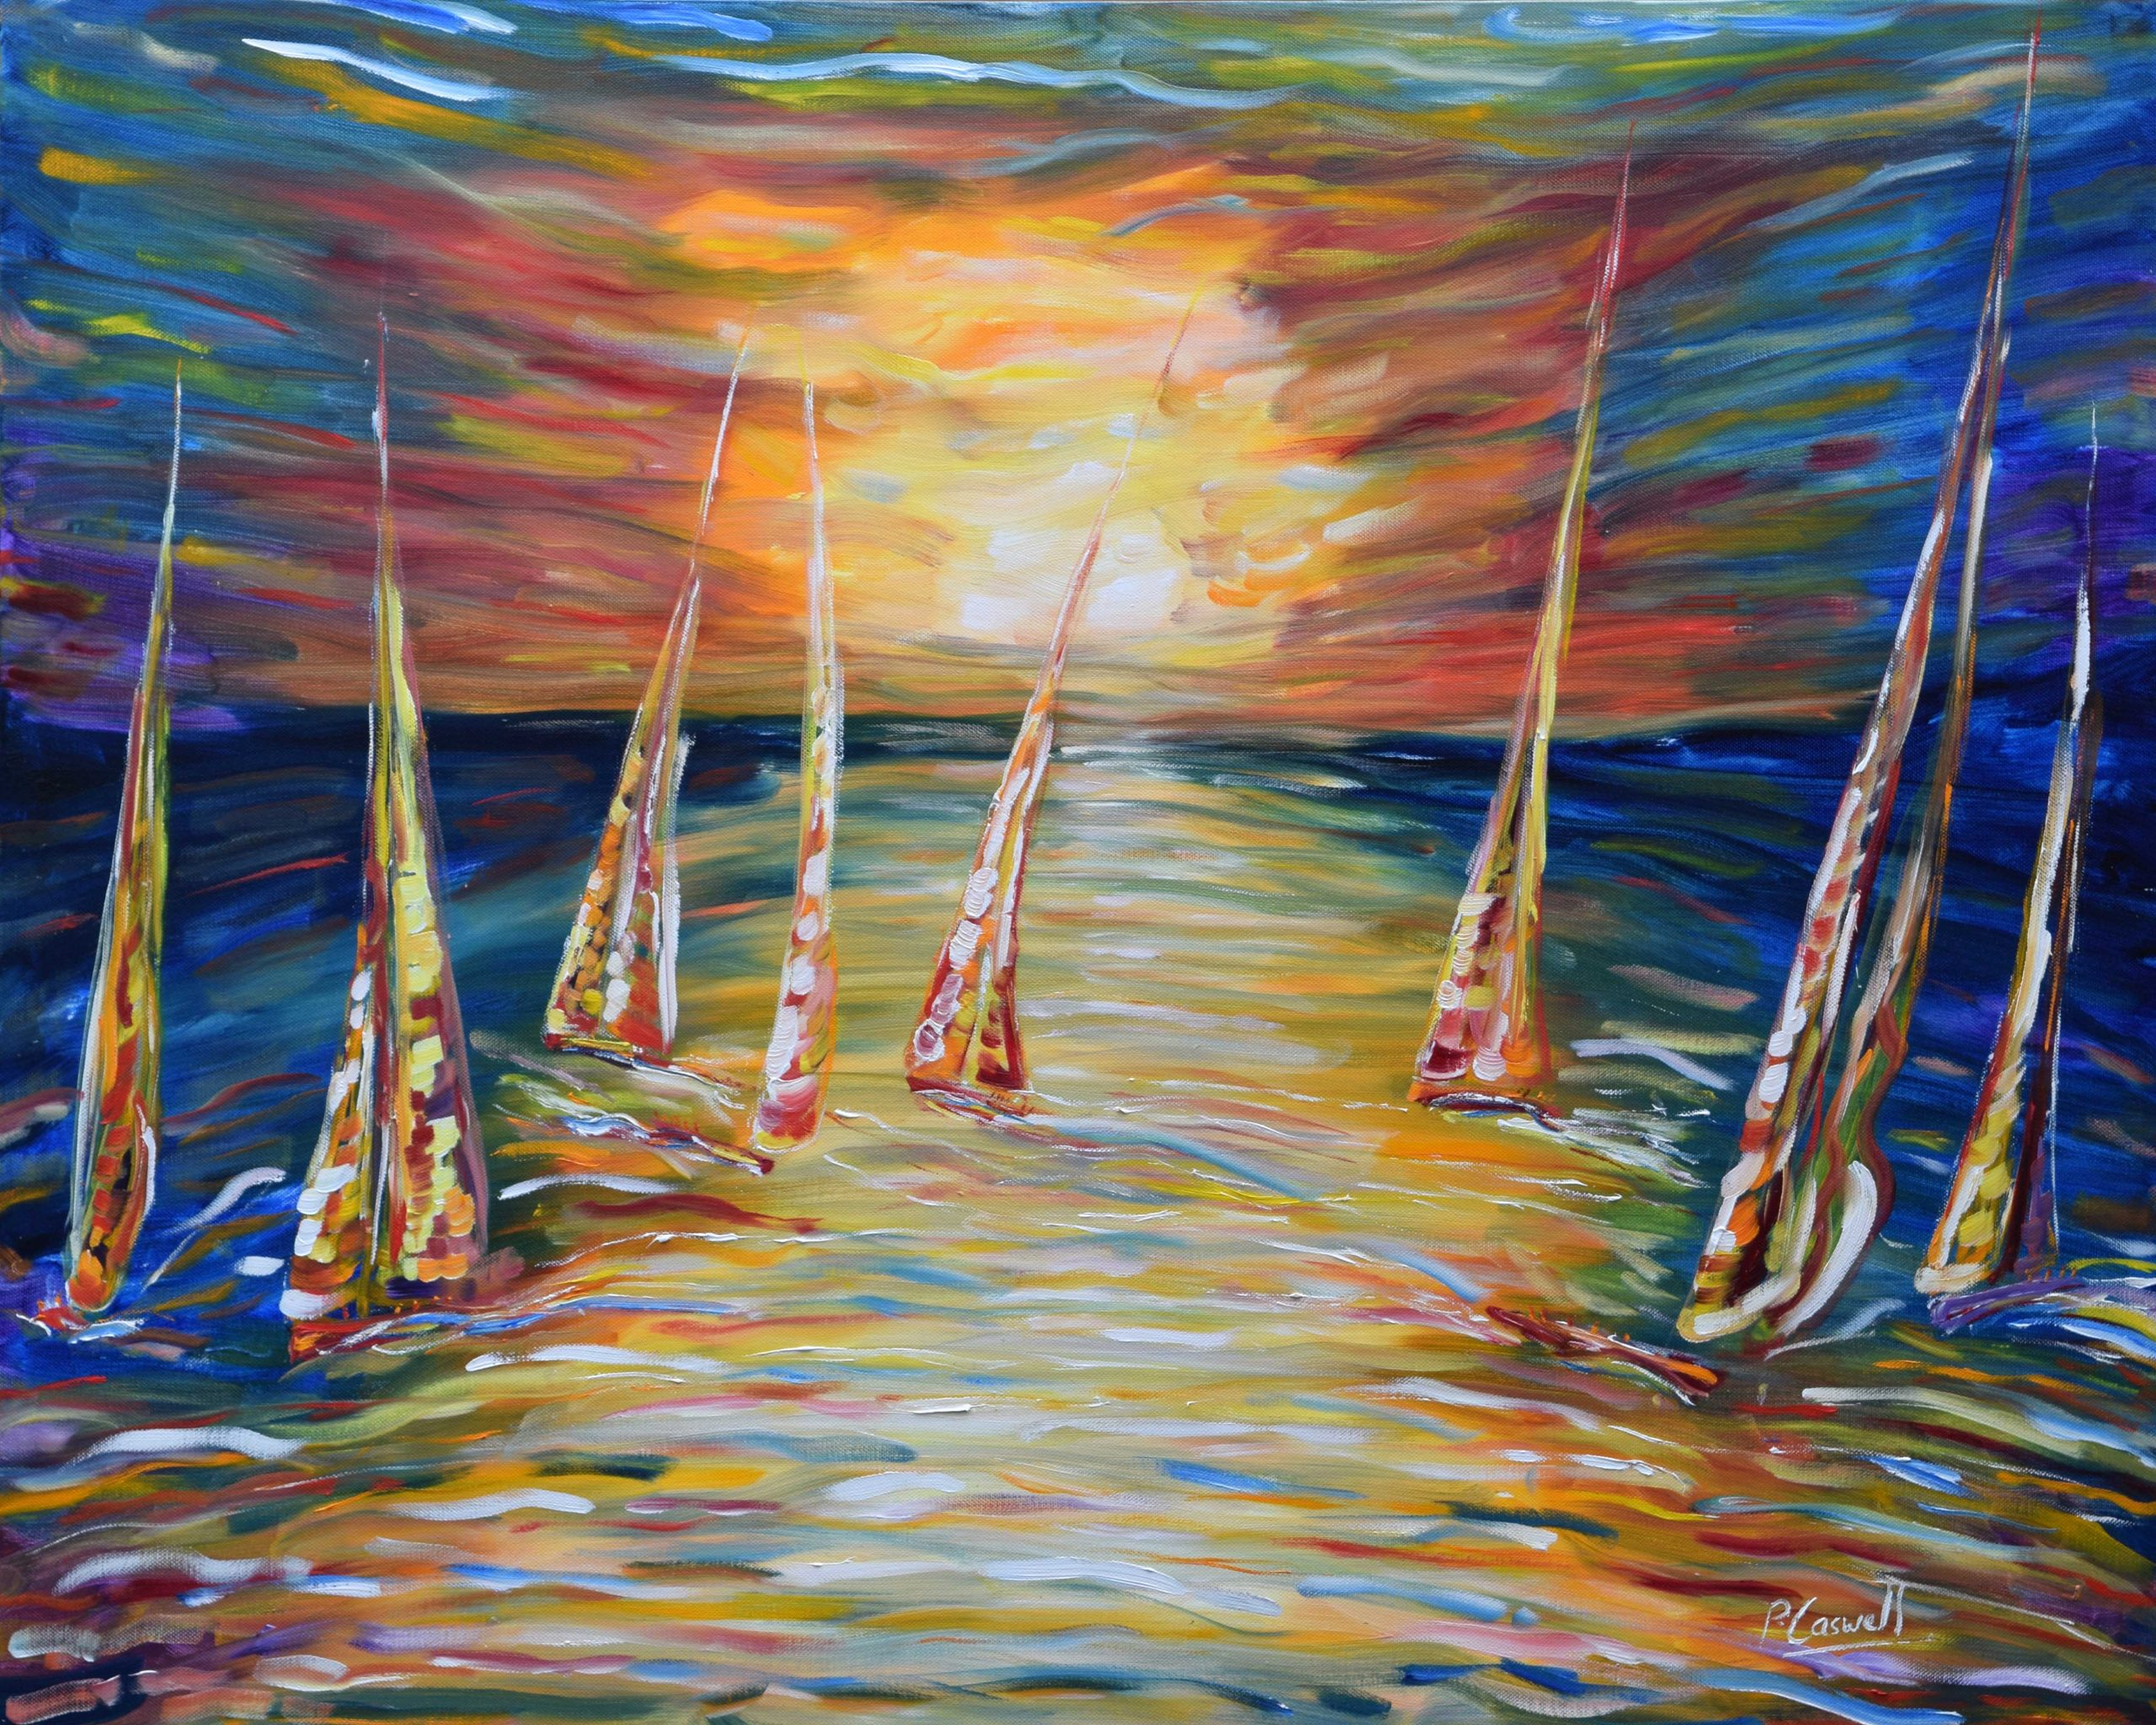 Sailing Paintings and Sailing Prints